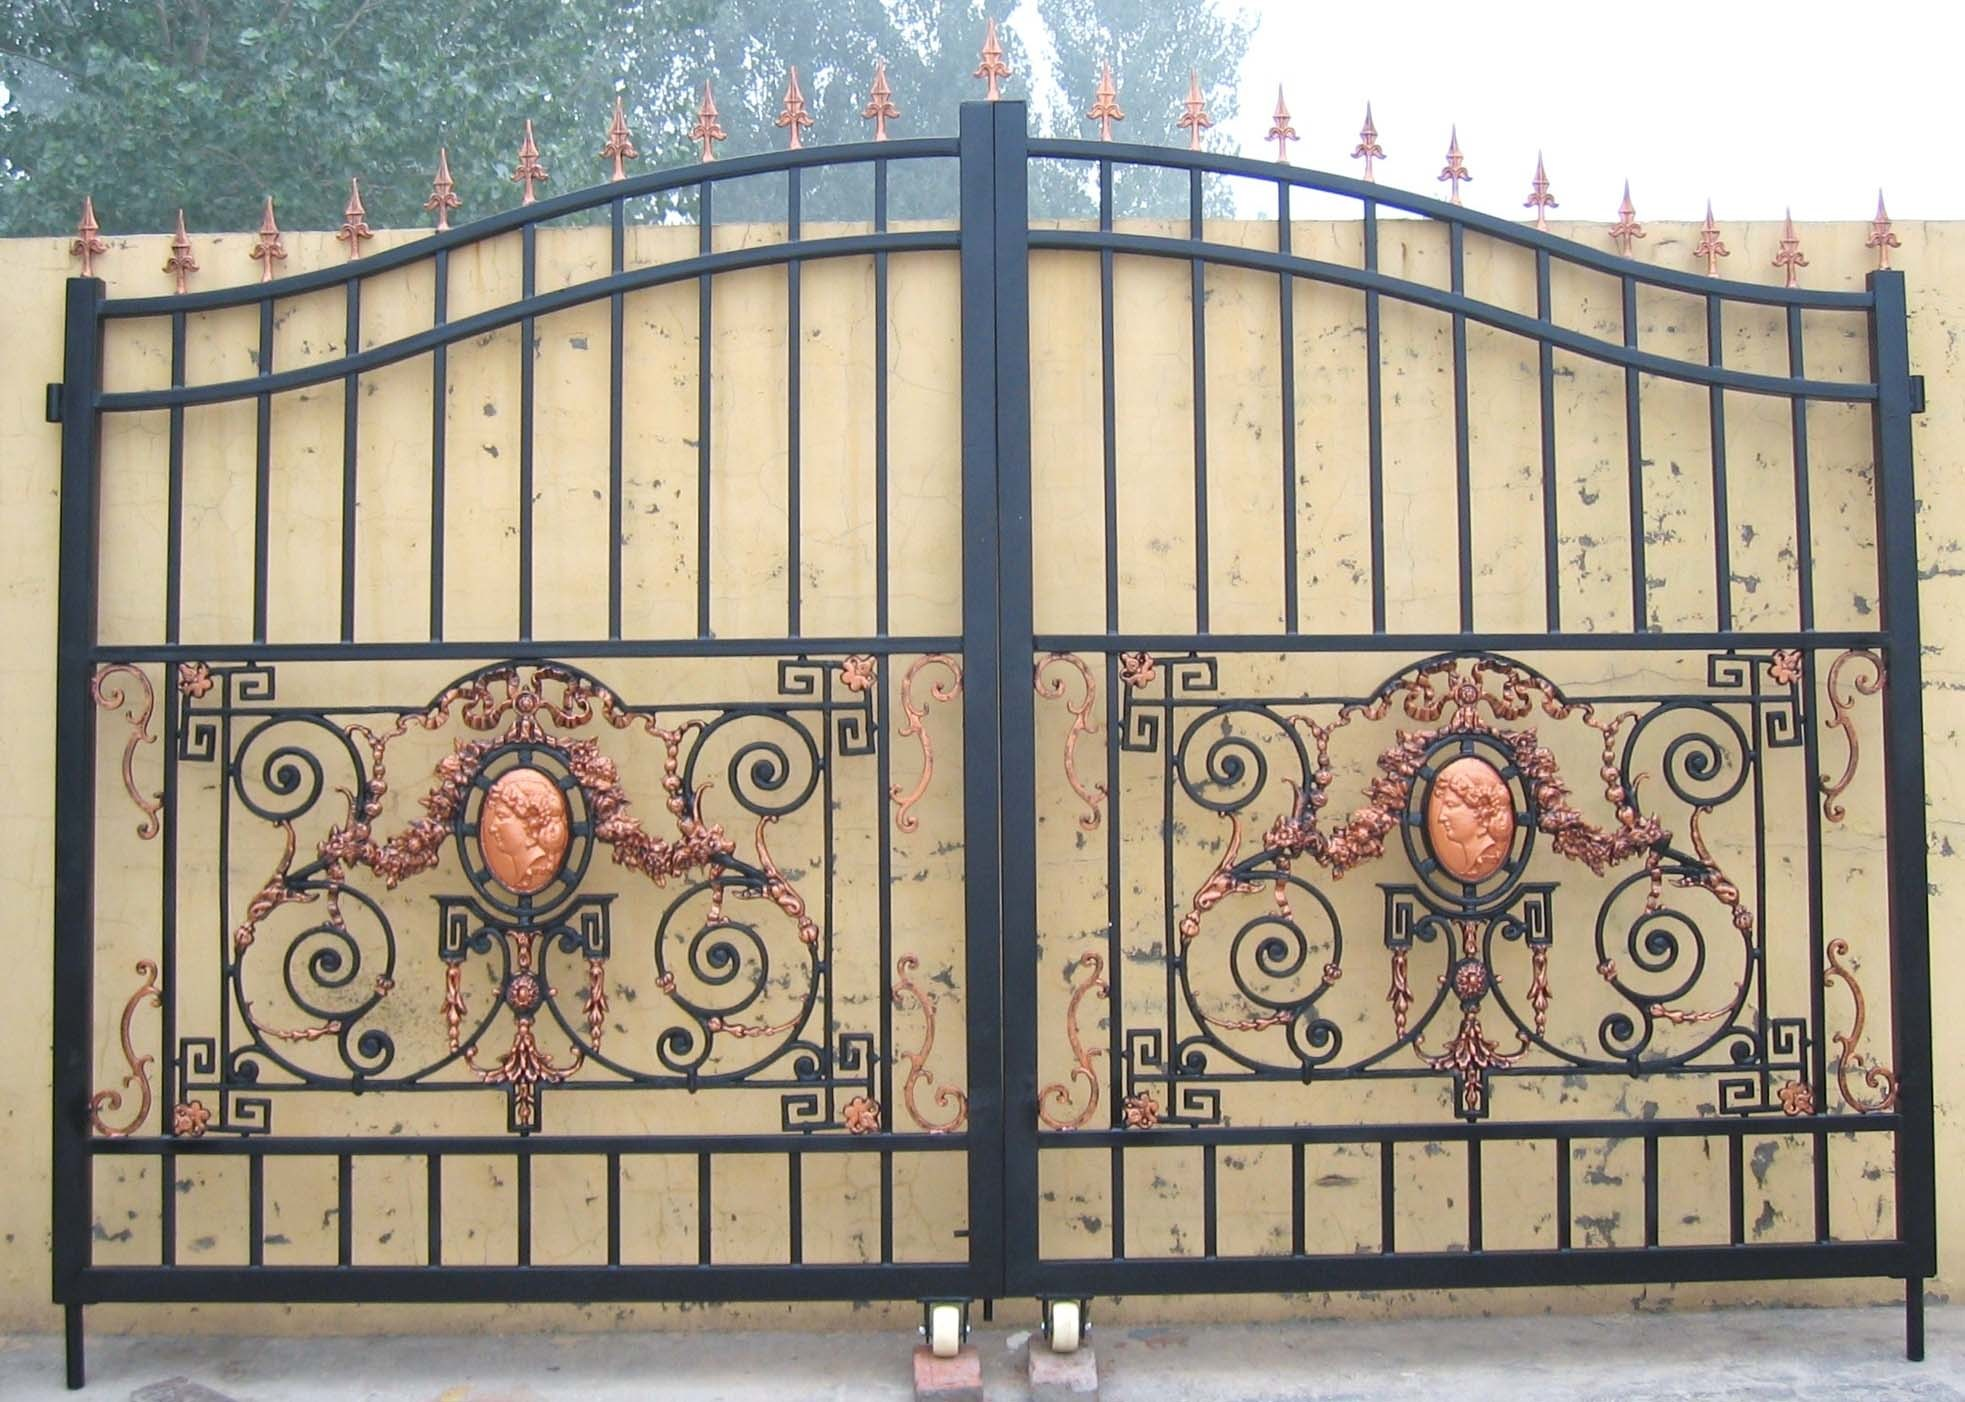 Wonderful Wrought Iron Fences and Gates Designs 1965 x 1402 · 284 kB · jpeg